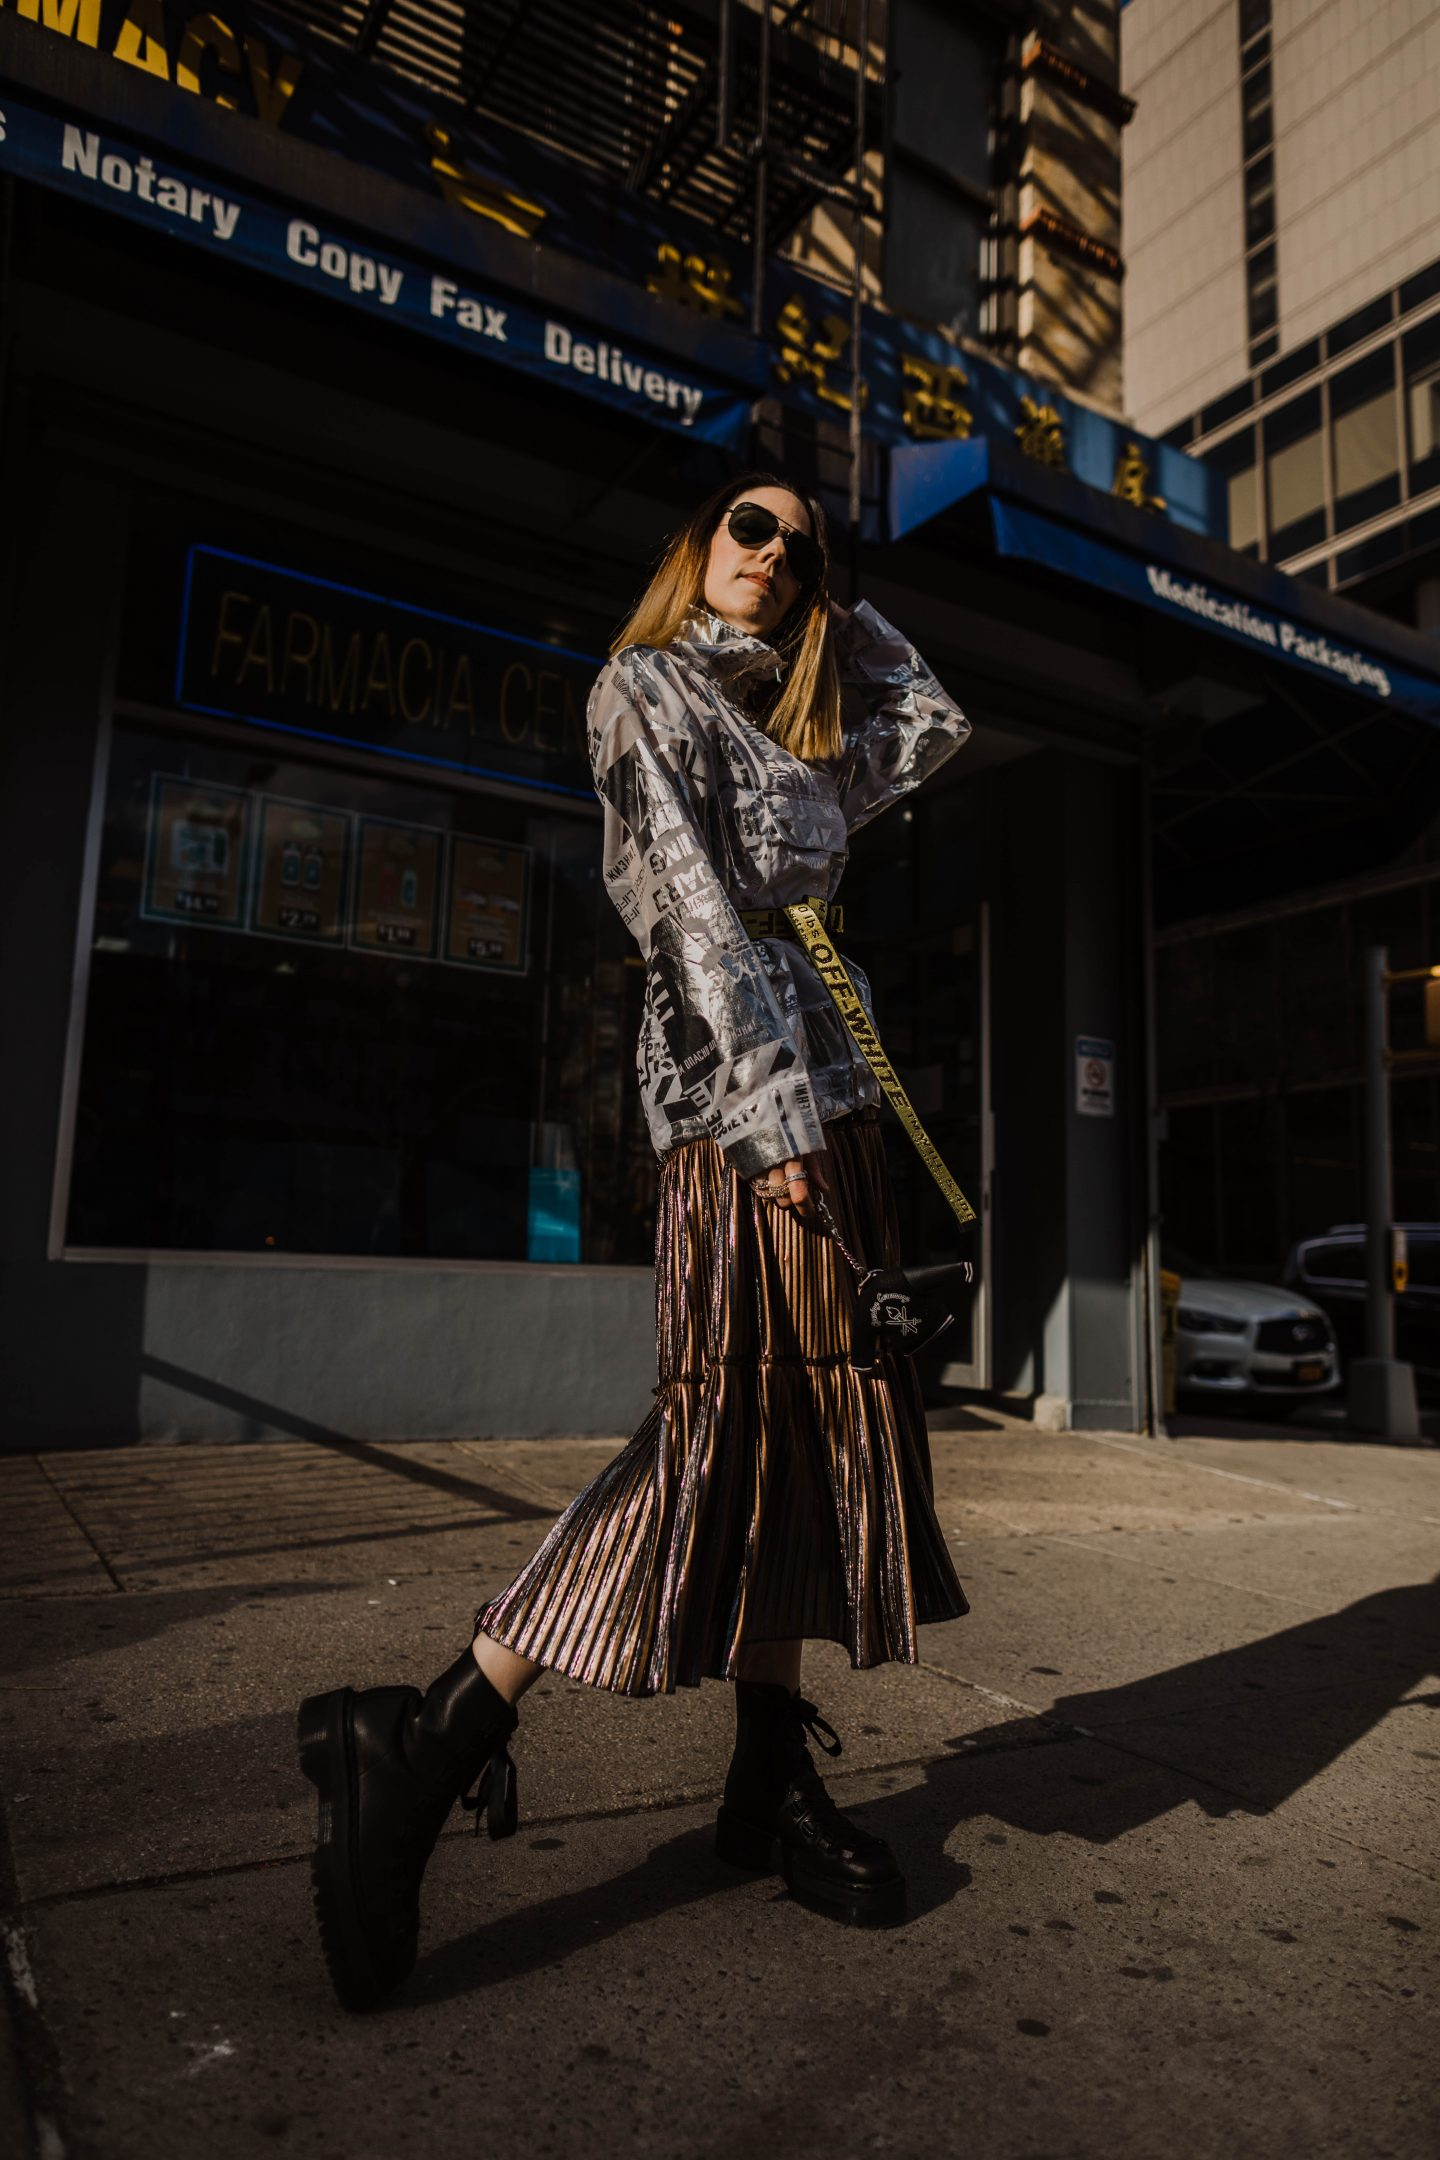 Nicole Miller Gold Pleated Two Tone Skirt x Forever 21 Graphic Anorak x Dr Marten's Trevonna Platform Boots x Off-White Industrial Belt x Rent The Runway Unlimited